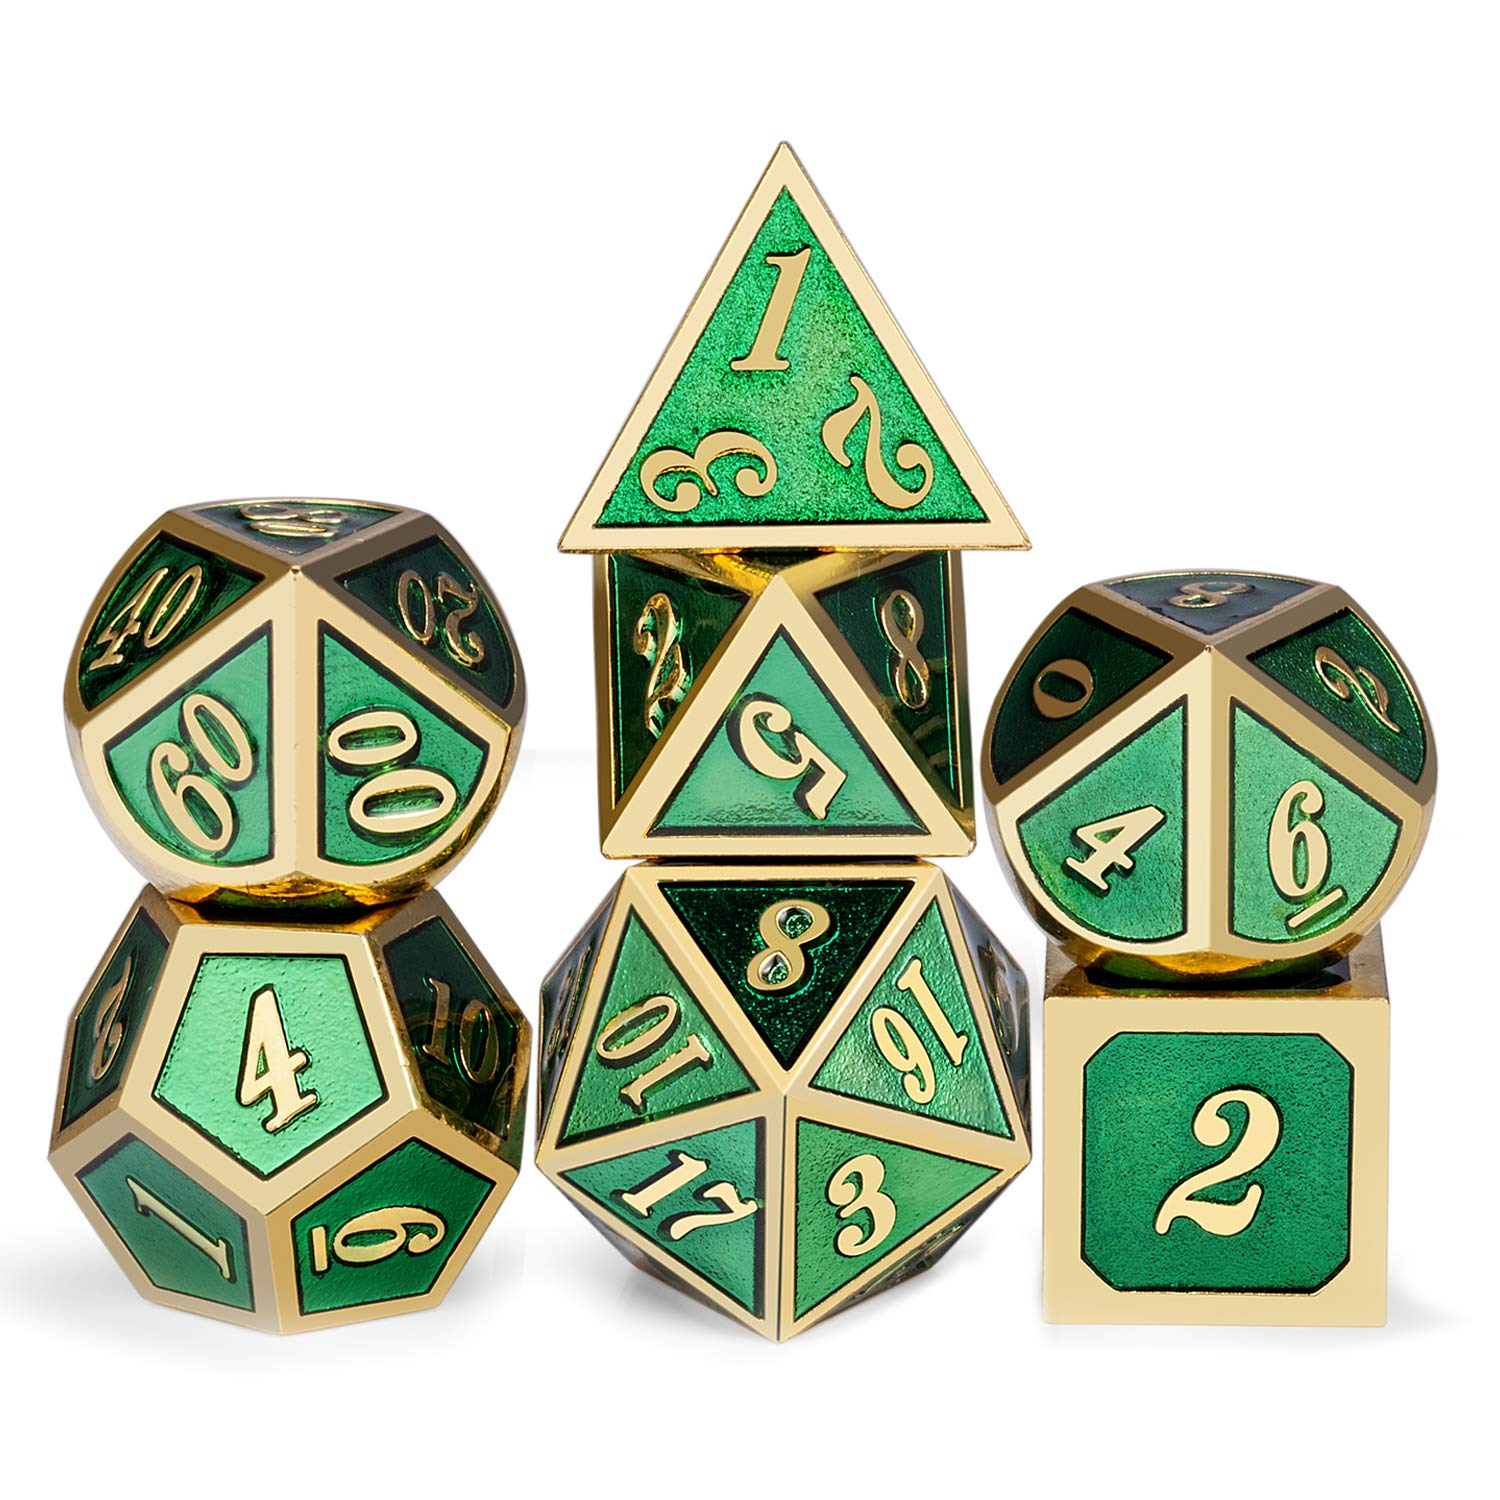 Meatl Dice Set D&D, 7 die Glitter Green DND Dice with Silver Metal Case Dungeons and Dragons Role Playing Game and Tabletop Games